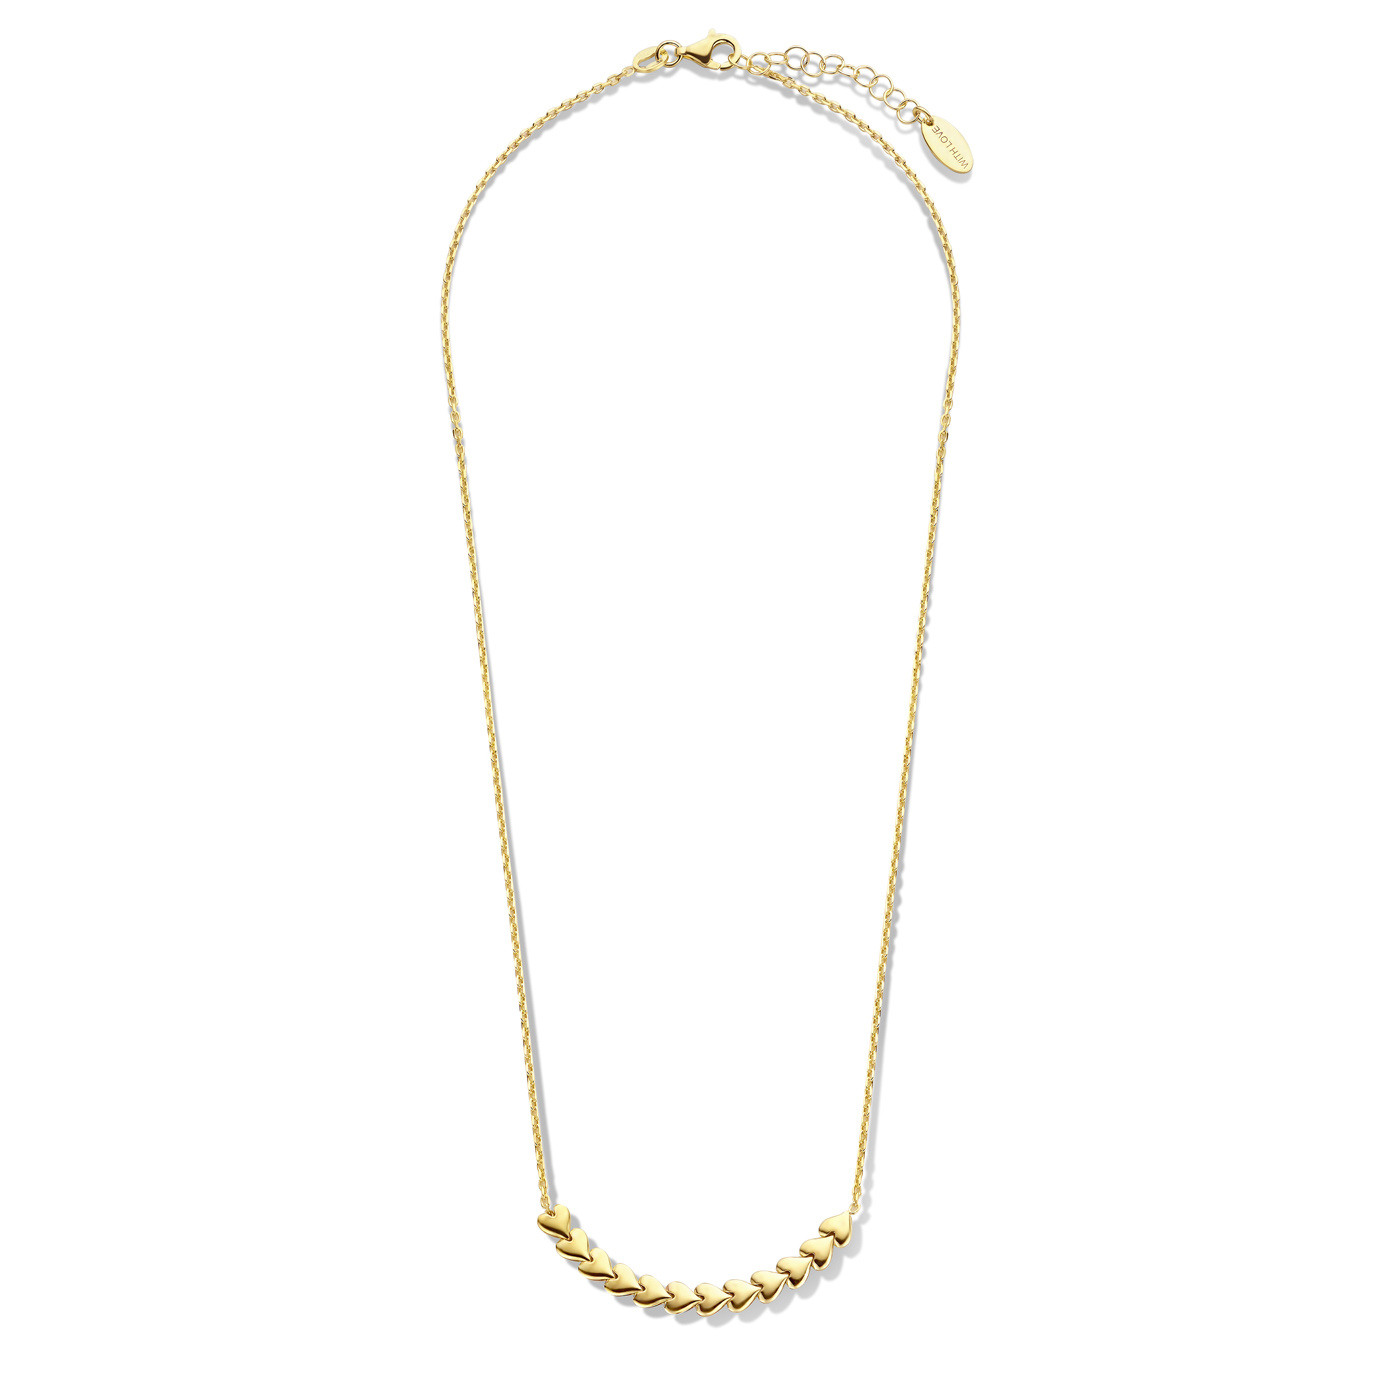 May Sparkle Forever Young Sunny 925 sterling silver gold colored necklace